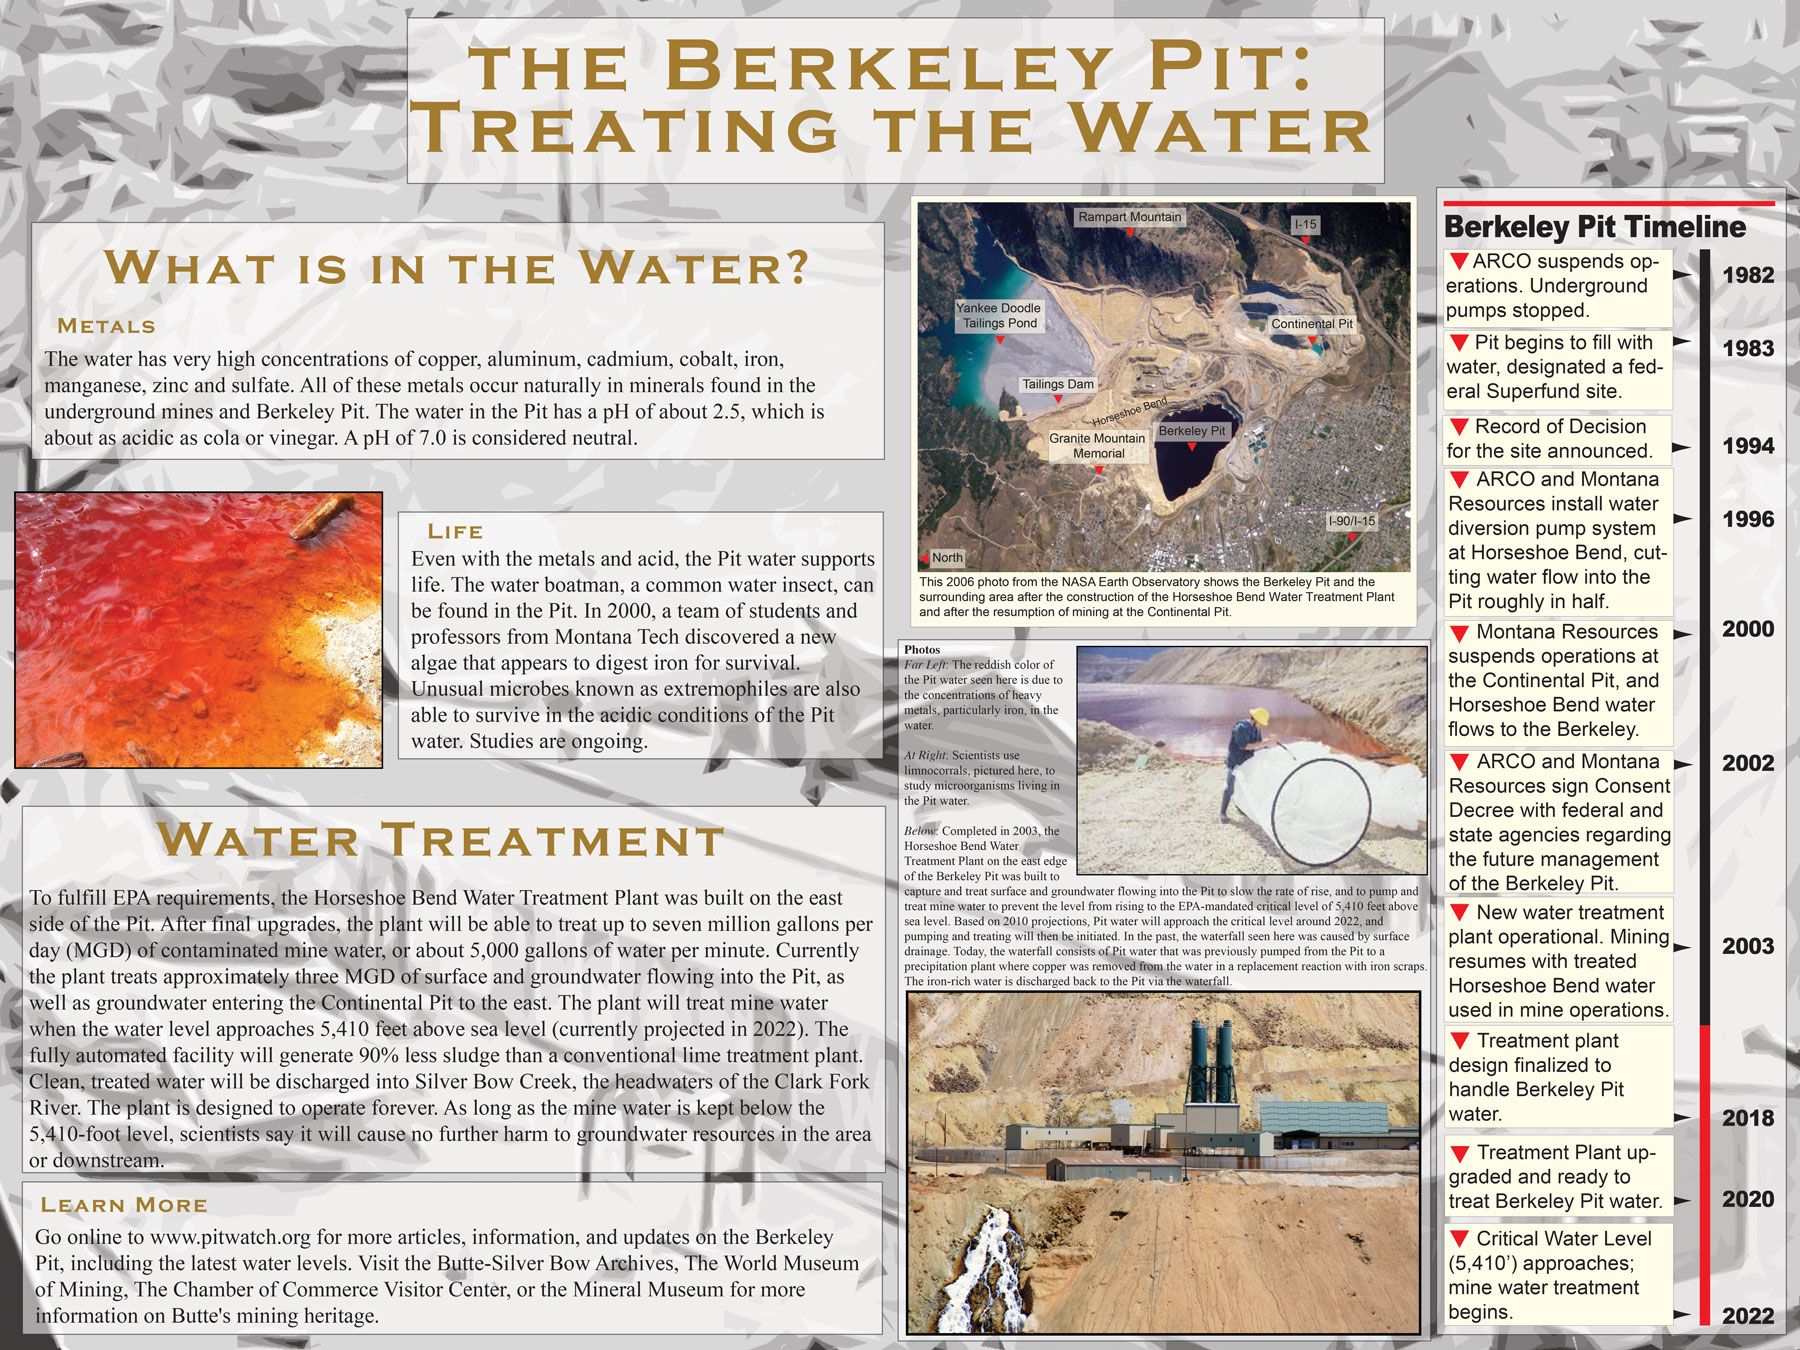 Berkeley Pit Poster Series: Treating the Water. Click on the image to view a larger version, or use the links at the bottom of the page to download a high-resolution version.